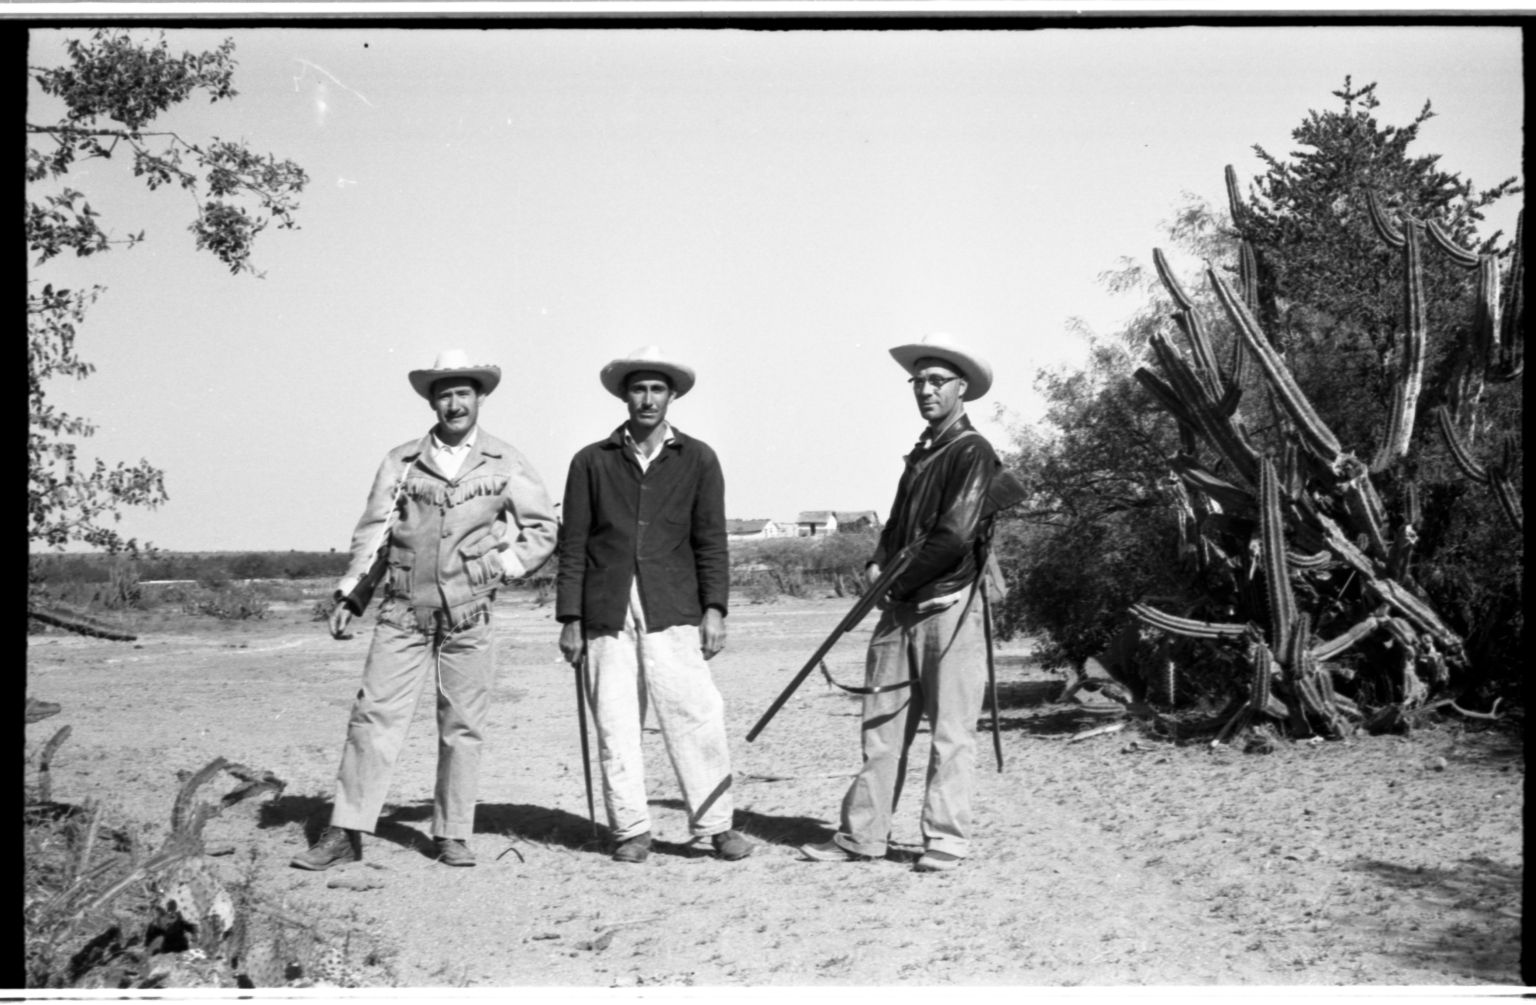 Field team in Tamaulipas, Mexico